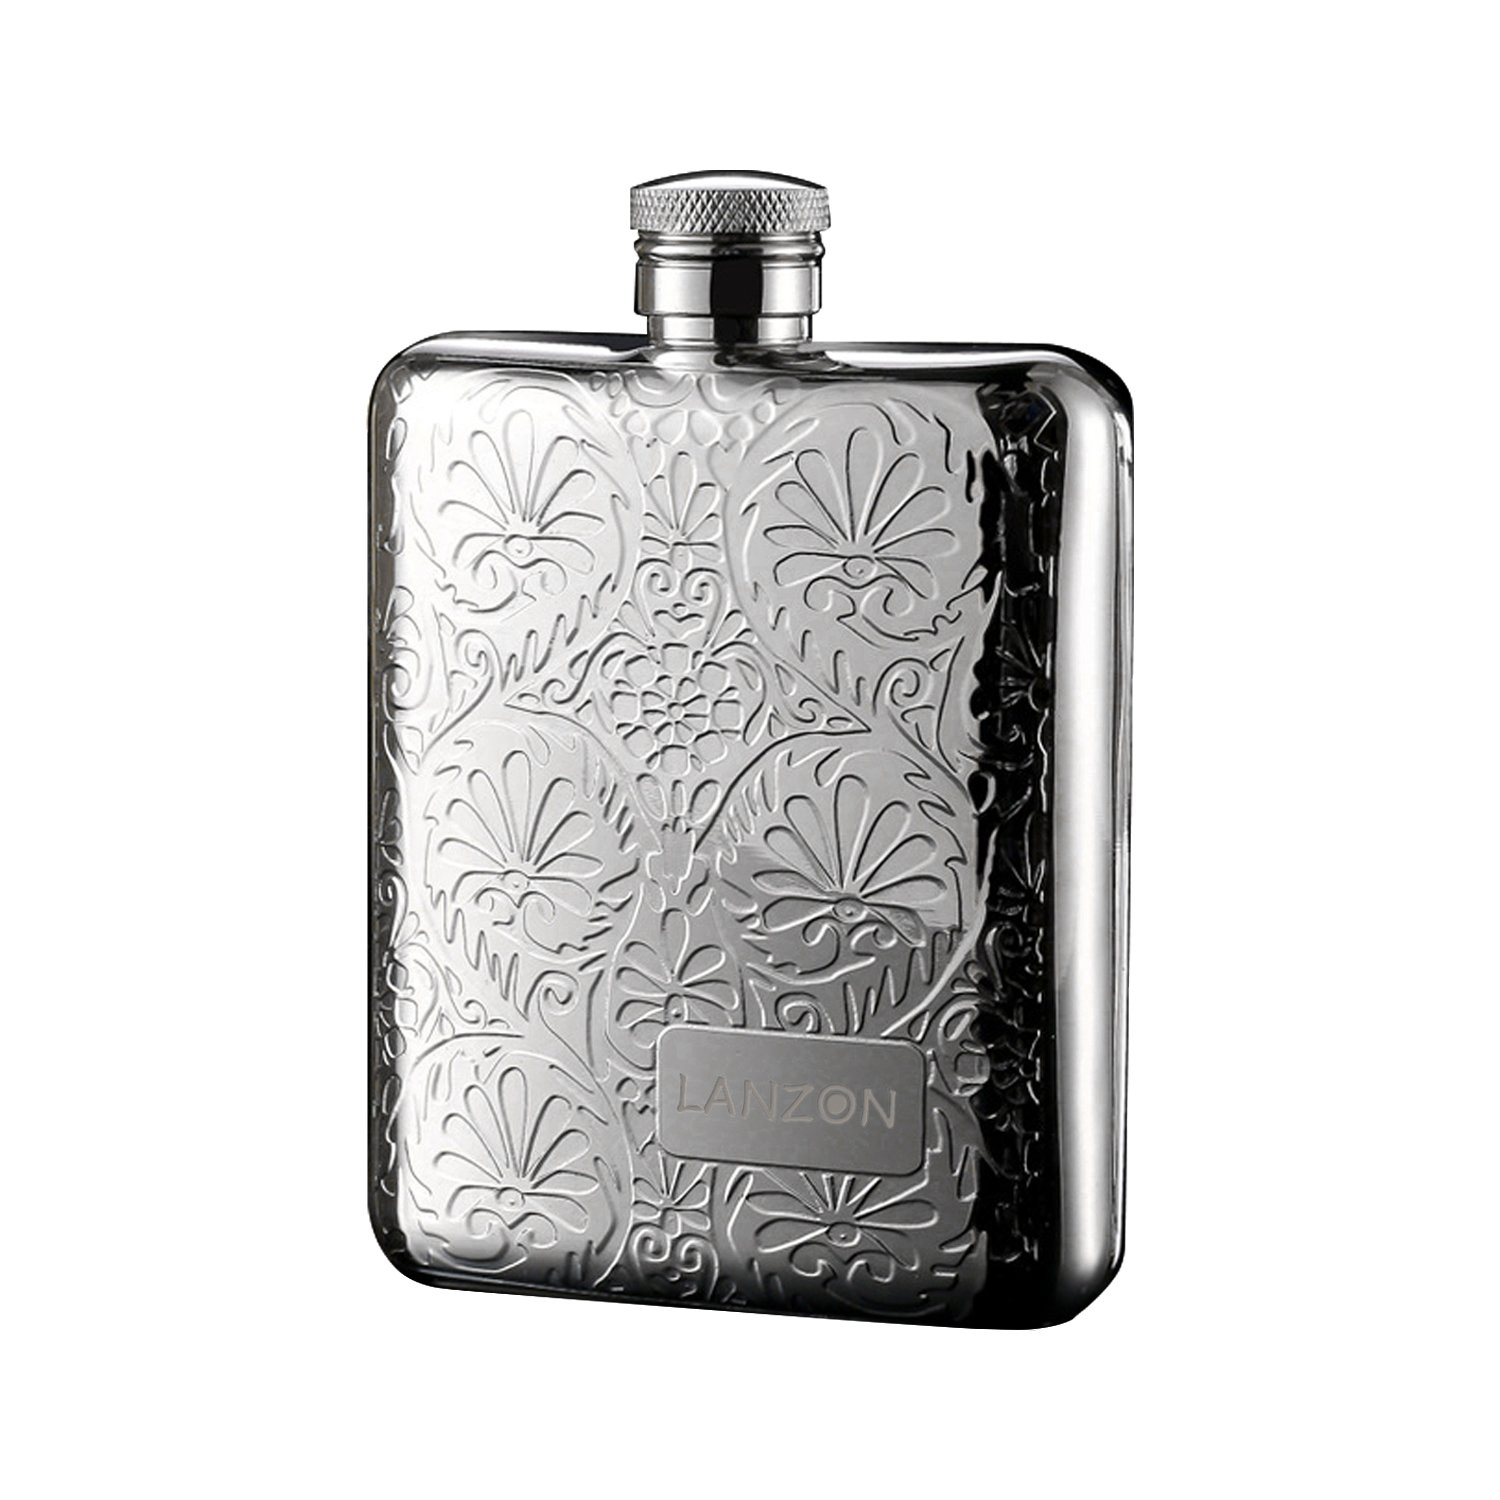 LANZON Hip Flask with Funnel, All 18/8 304 Food Grade Stainless Steel Curved Pocket Flask for Liquor   6 OZ Capacity   Gift Boxed (Flower Pattern)